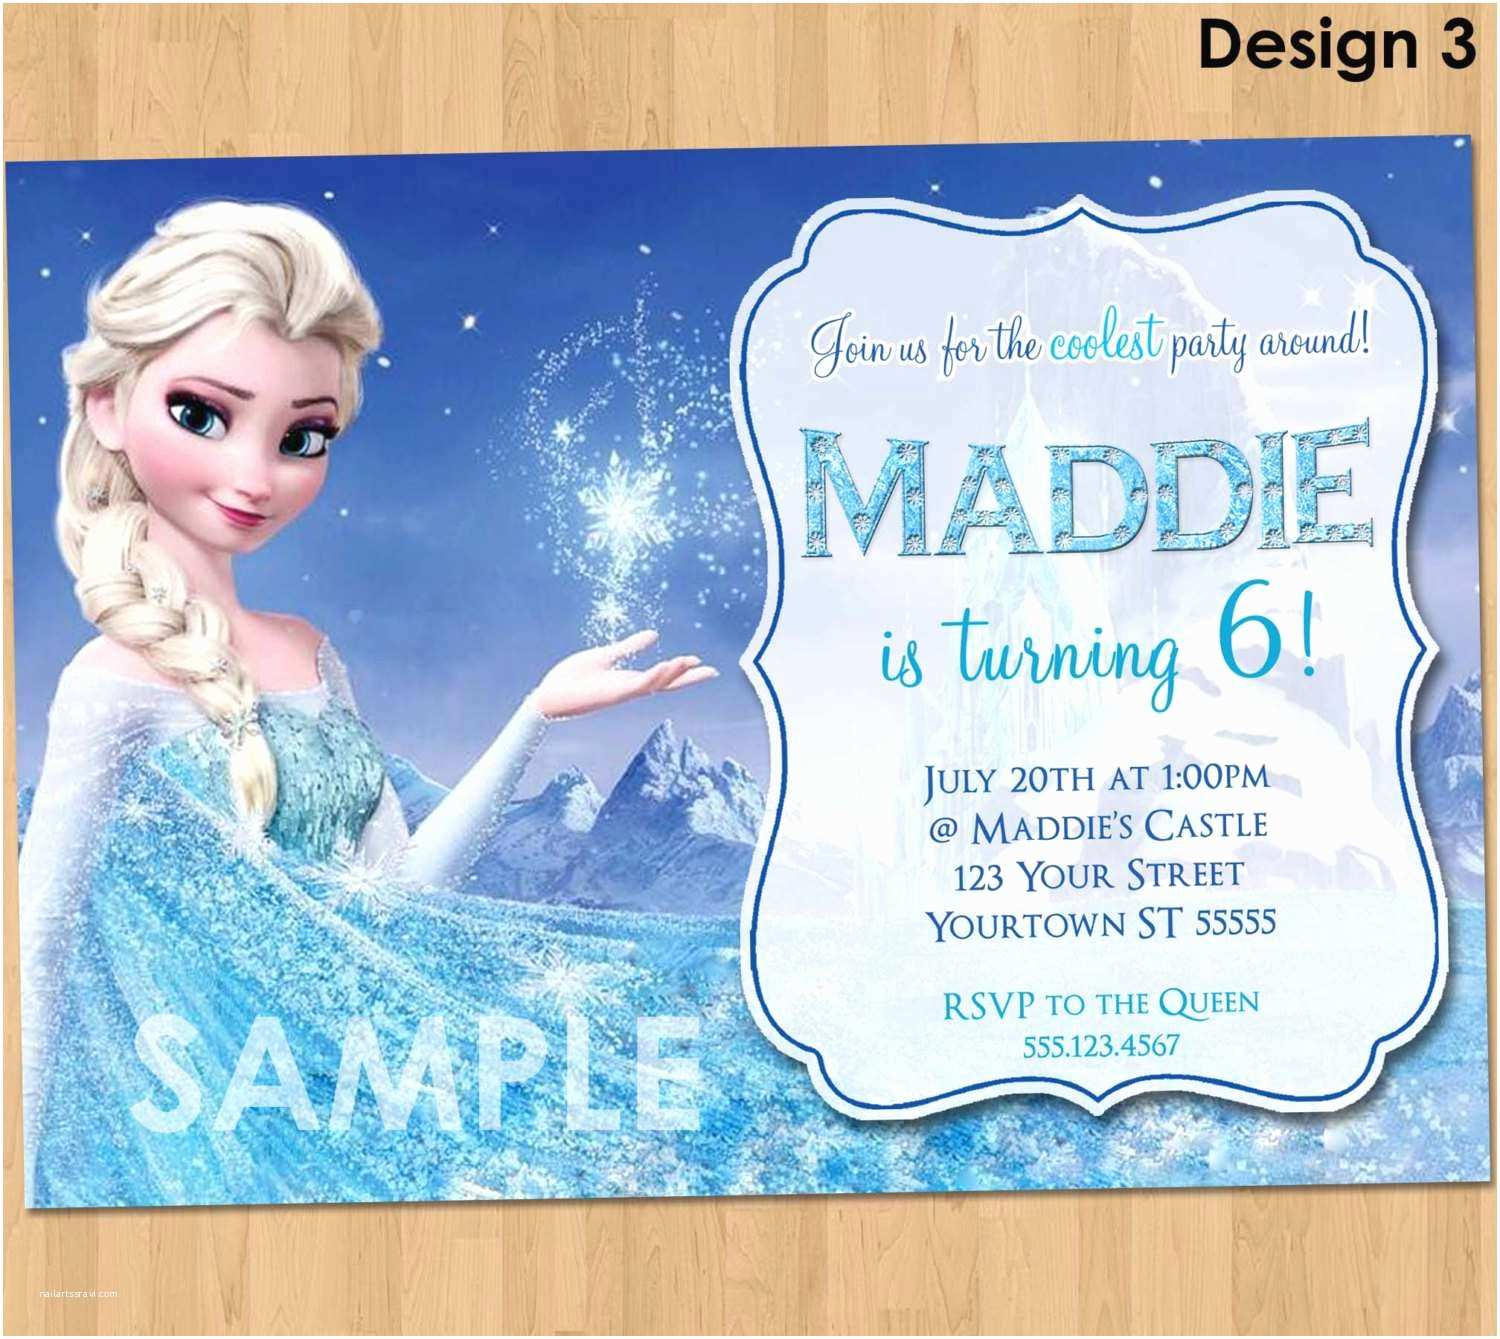 Walgreens Party Invitations How to Create Walgreens Party Invitations Designs Charming